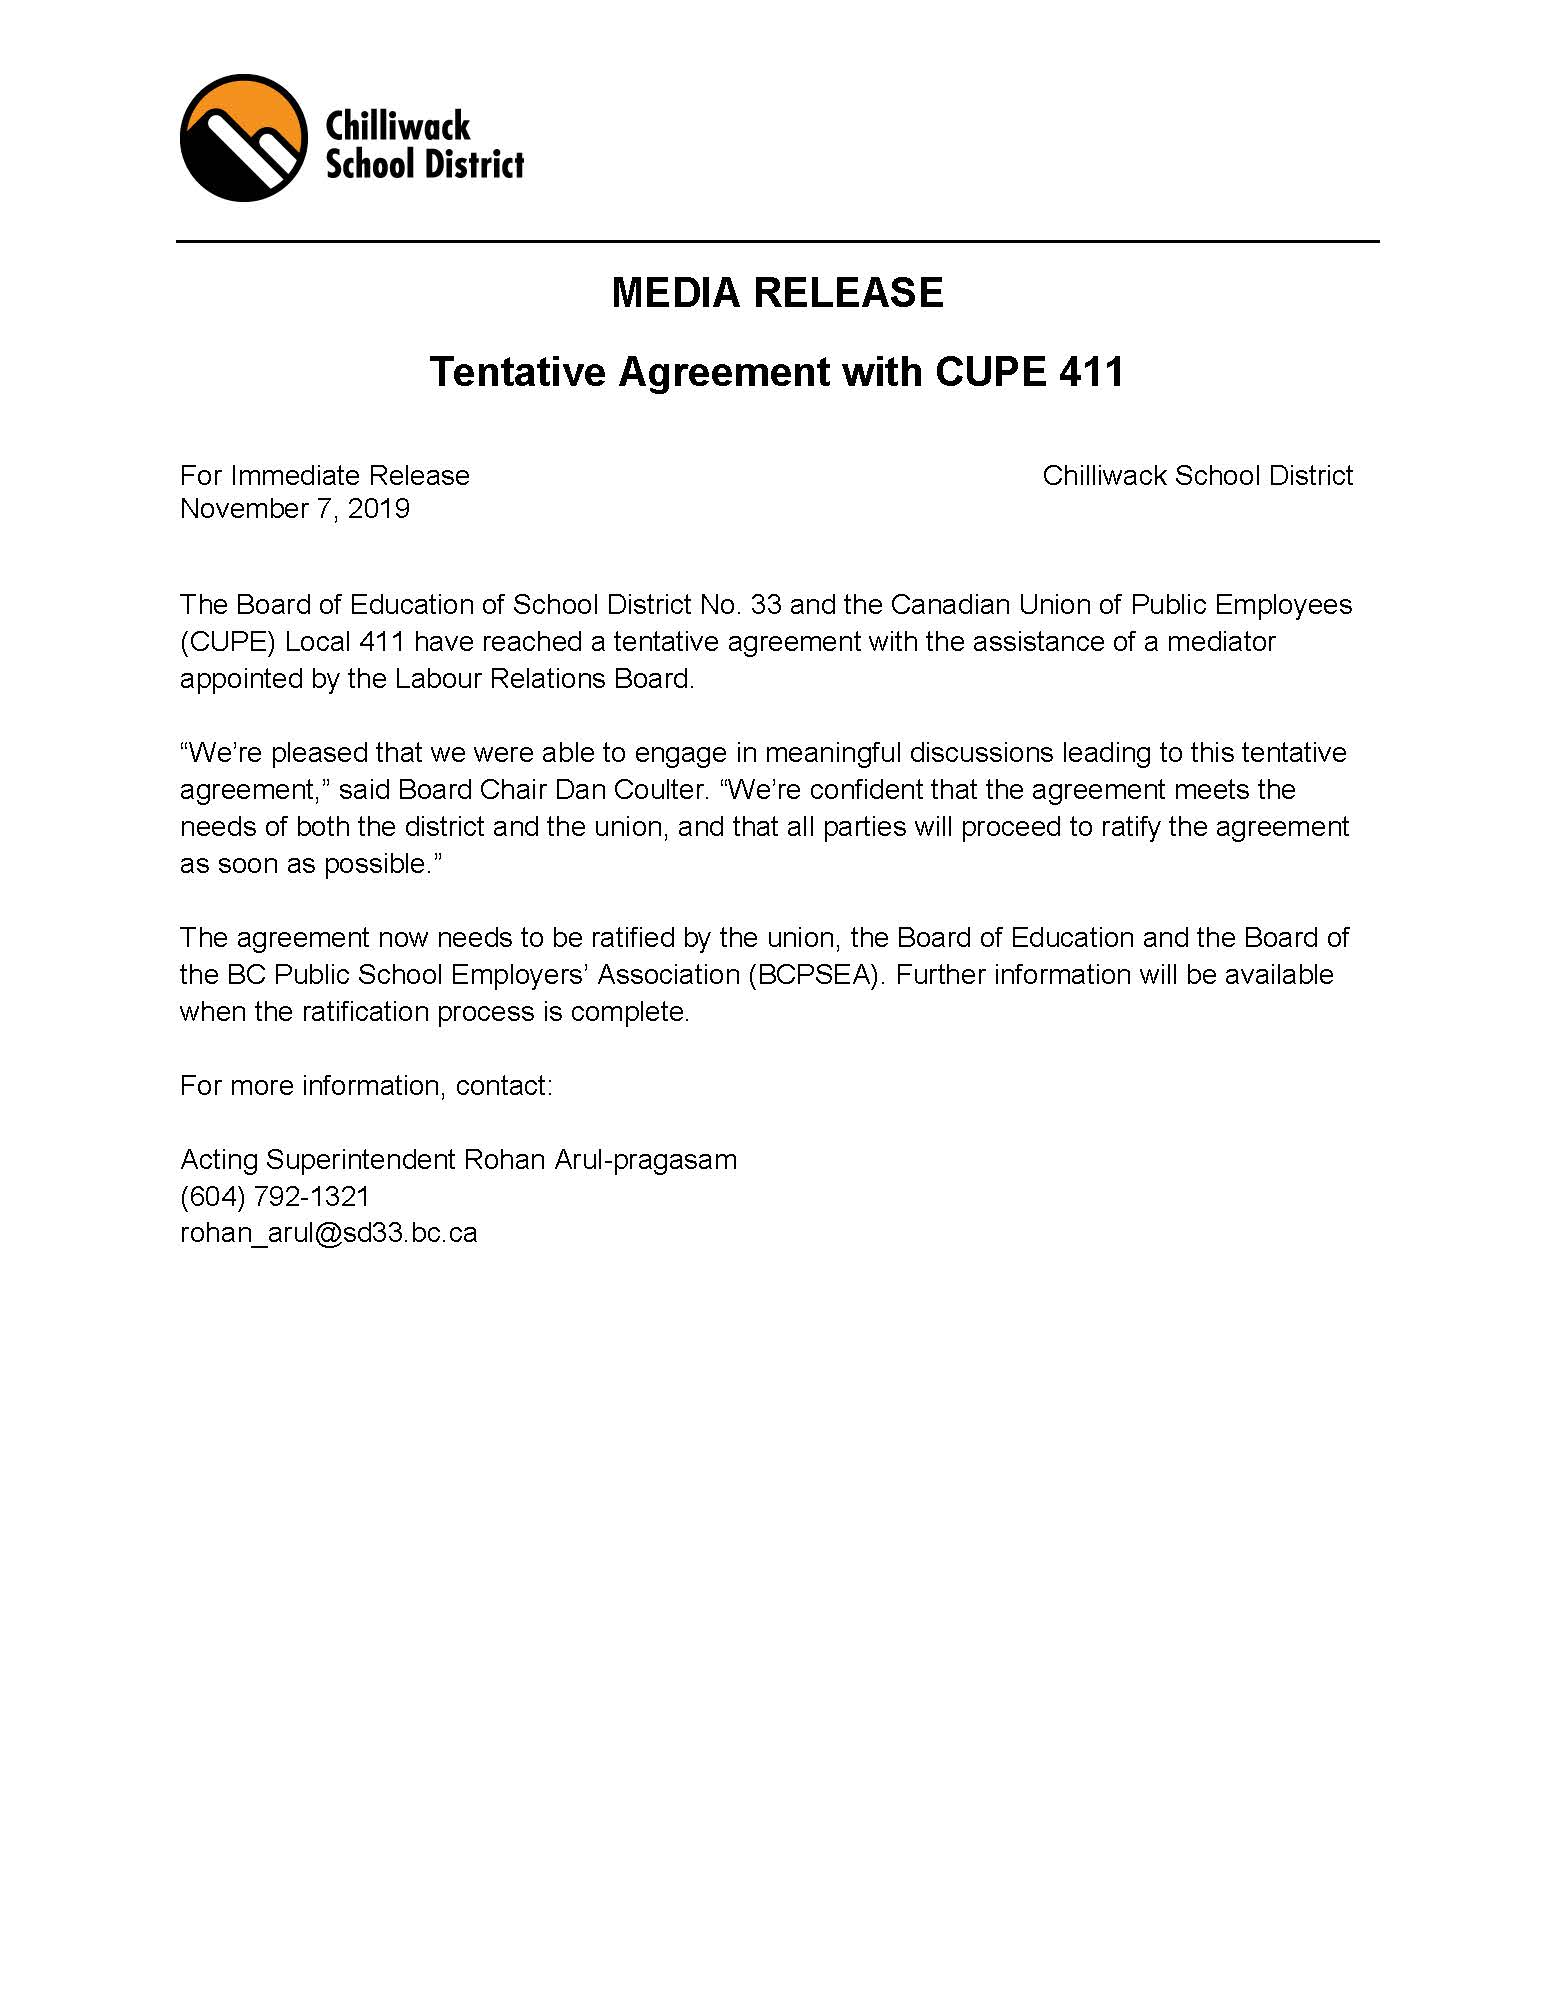 Media Release: Tentative Agreement with CUPE 411